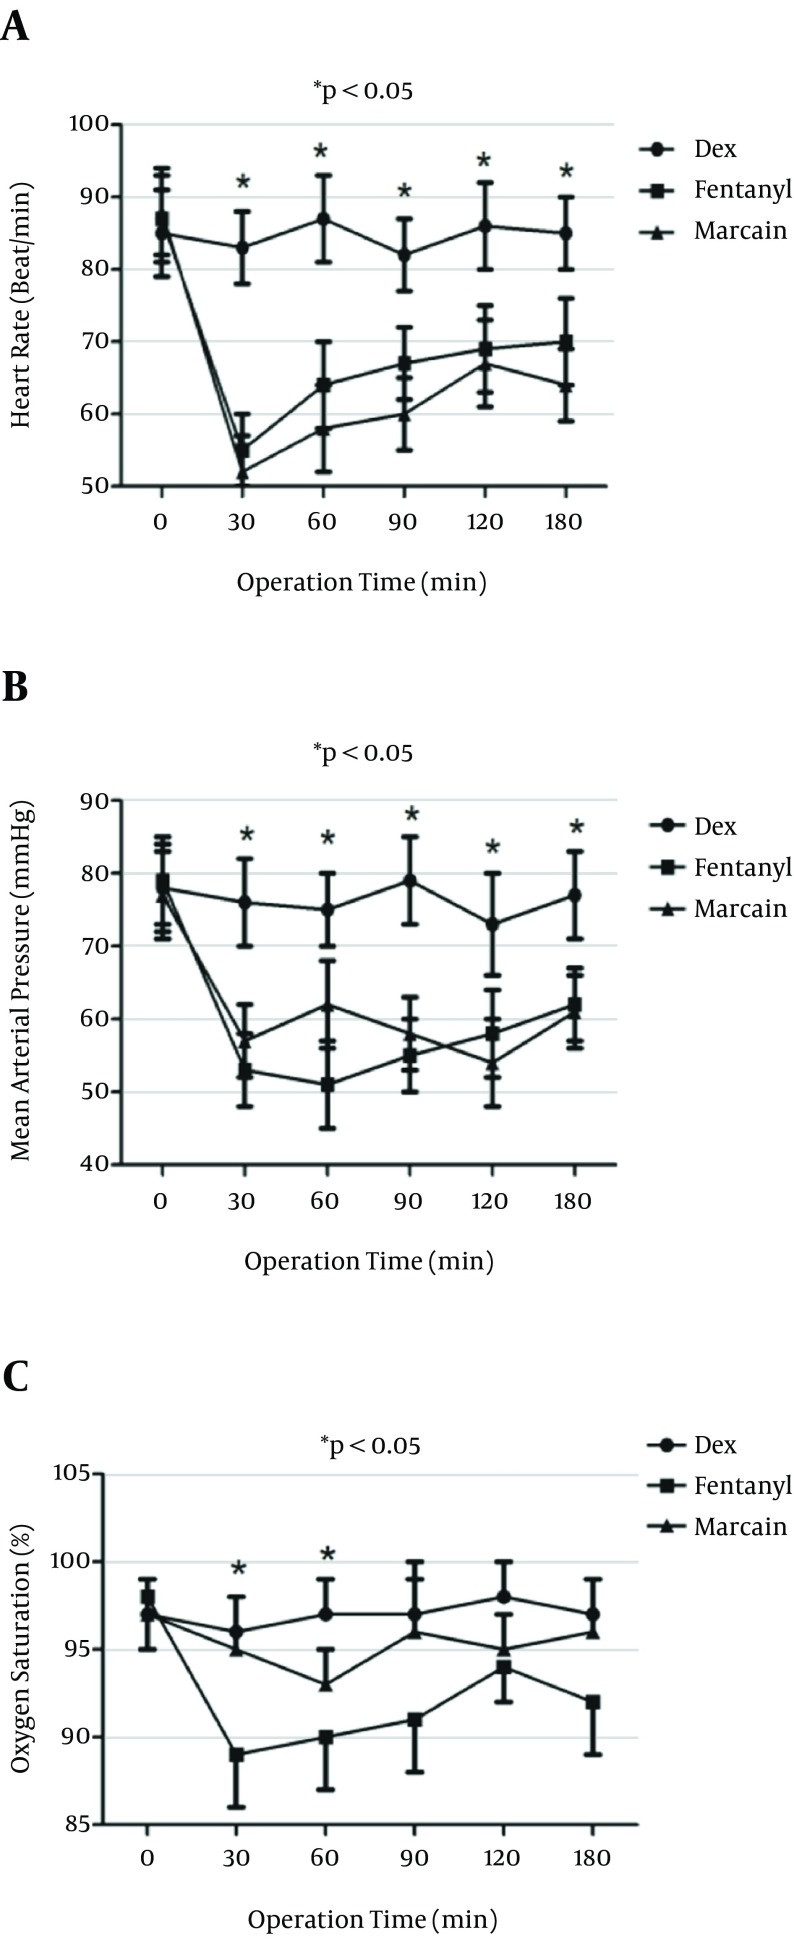 Heart Rate and Mean Arterial Blood Pressure (MAP) and Arterial Oxygen Saturation (%) of Patients After Intrathecal Injection of Dexmedetomidine (DEX), Fentanyl (F) and Marcaine (M), Bupivacaine The Control Group P value for DEX versus F and M groups is less than 0.05.